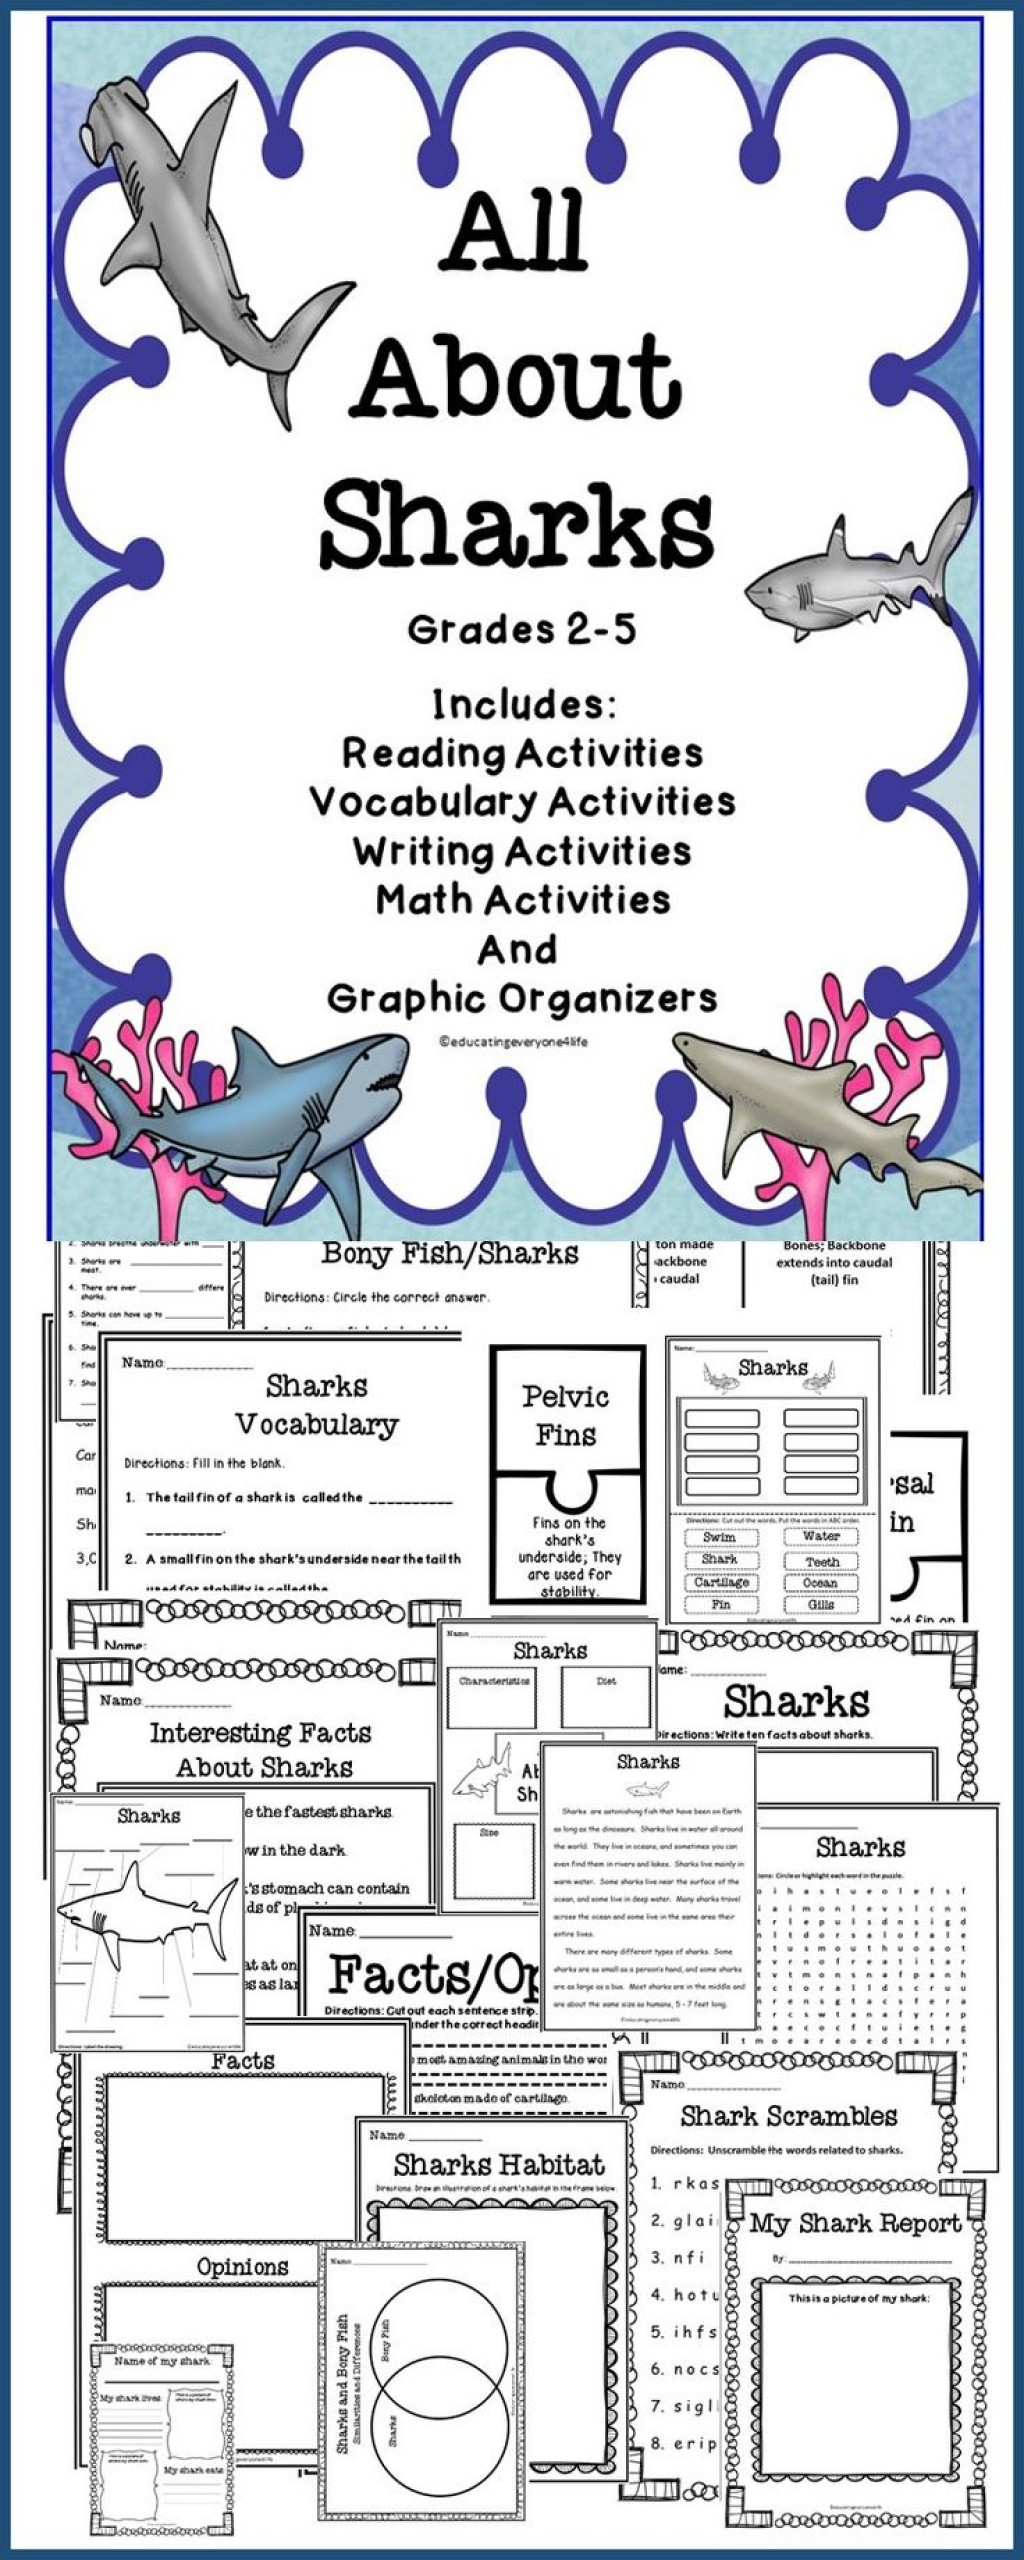 005 Essay Example Shark All About Sharks Reading Wonderful Essayshark Sign Up Introduction Topics Large